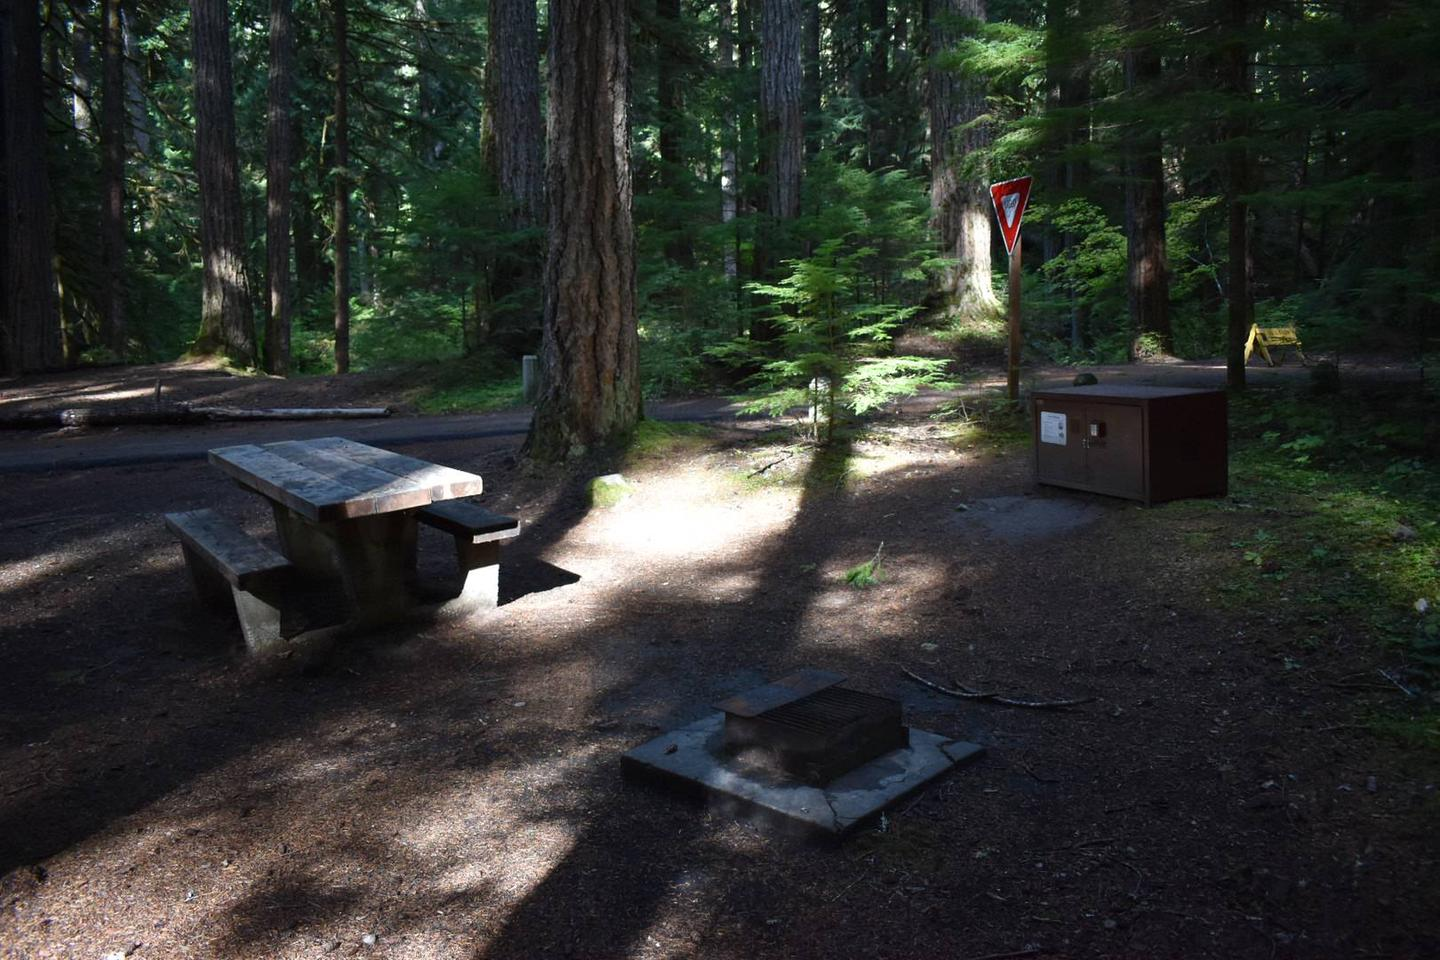 Ohanapecosh Campground - Site D017 AmenitiesCampers are provided with a picnic table, food storage box, and fire pit.